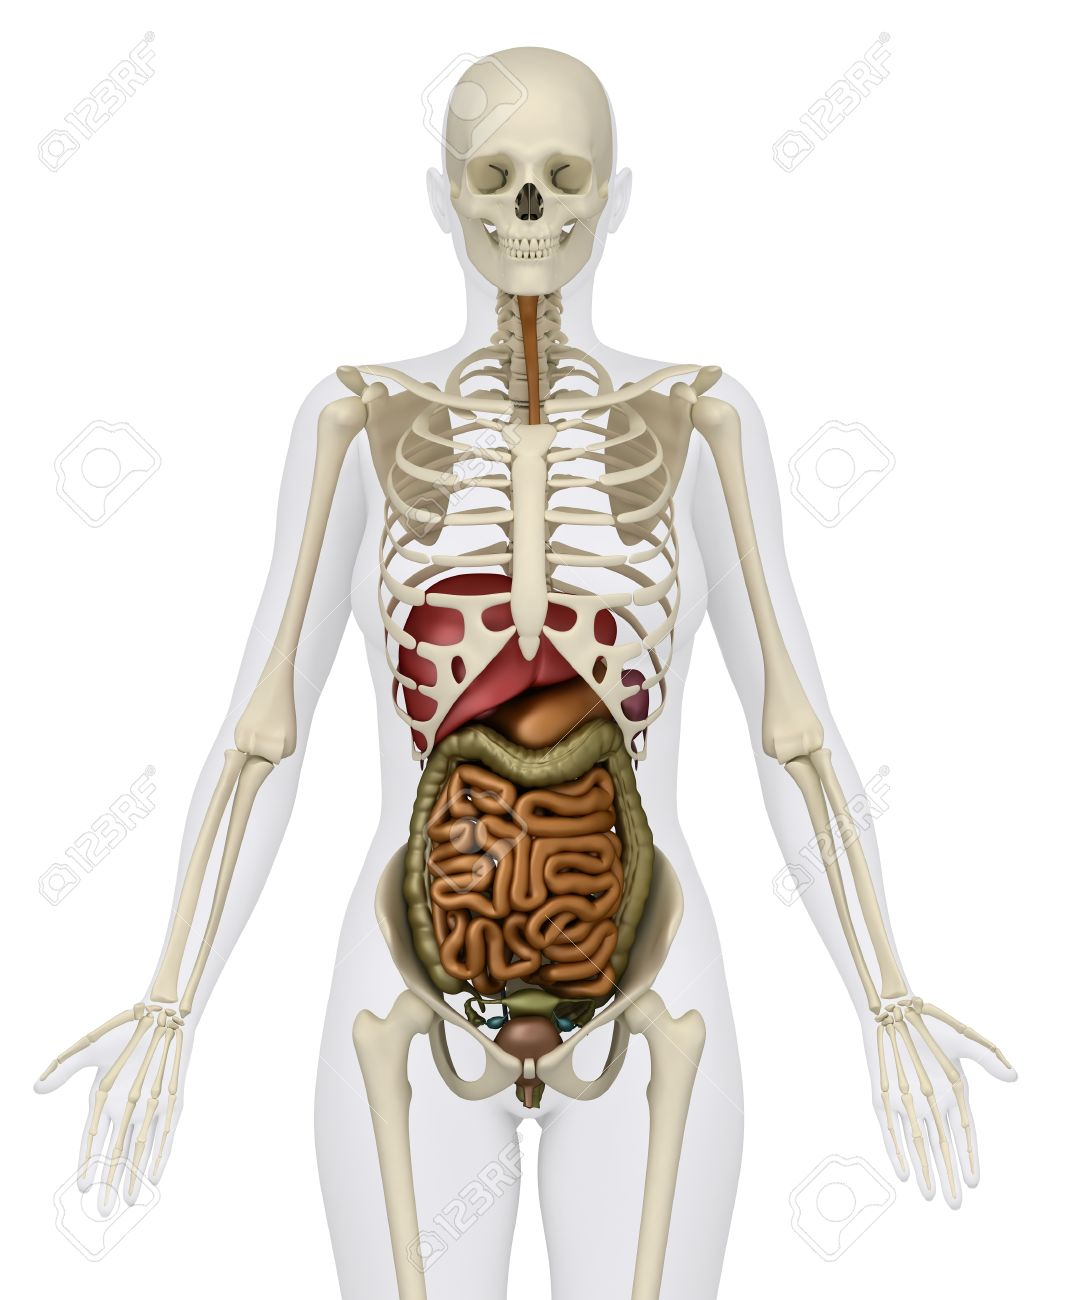 Anatomy of abdomen stock photo picture and royalty free image anatomy of abdomen stock photo 9651178 ccuart Image collections